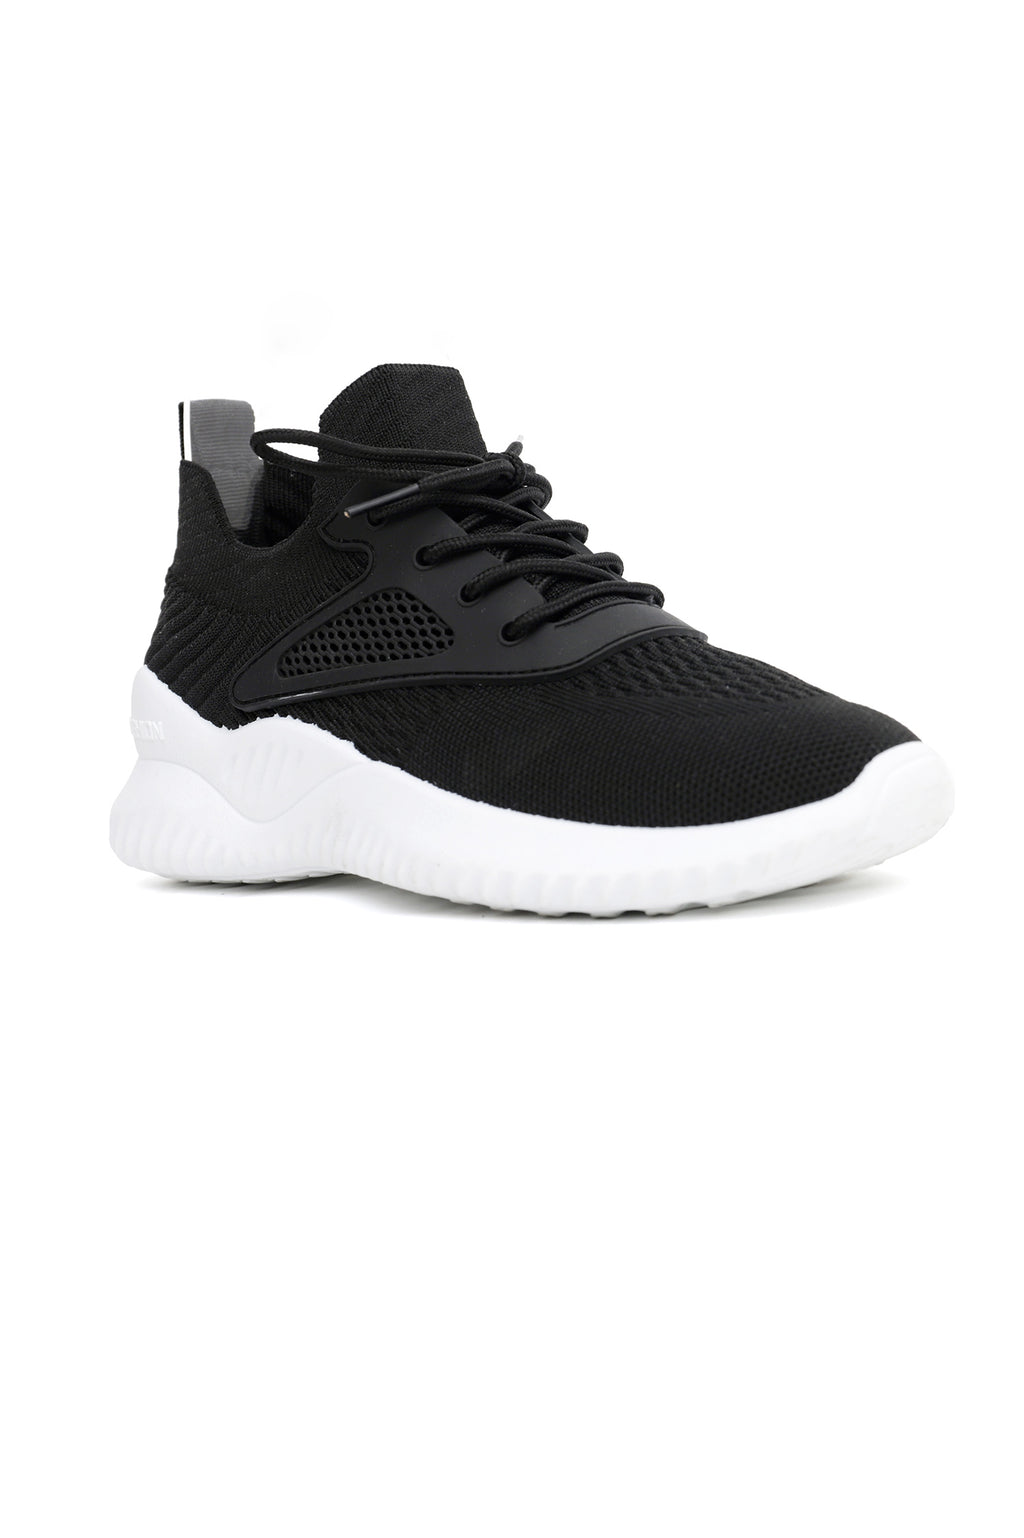 BOOST TRAINERS -BLACK